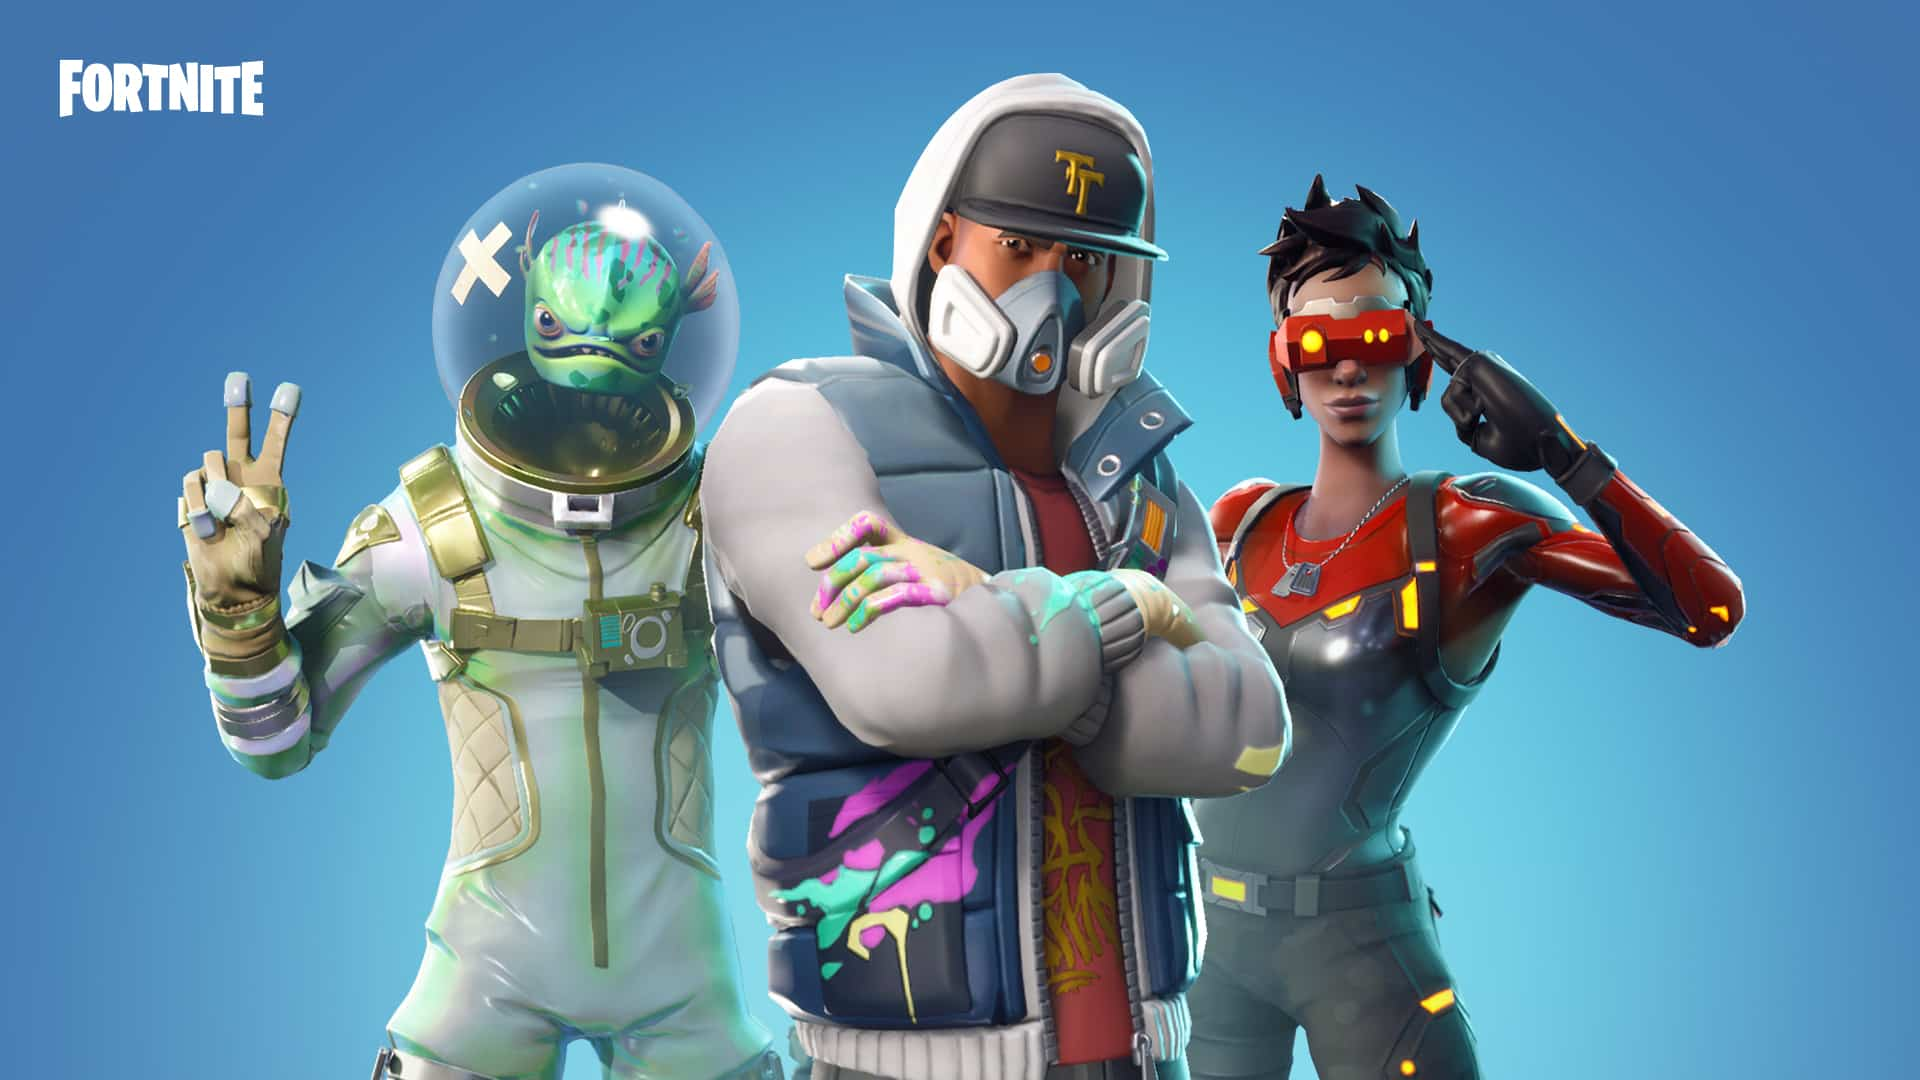 Fortnite 4.4 Content Update